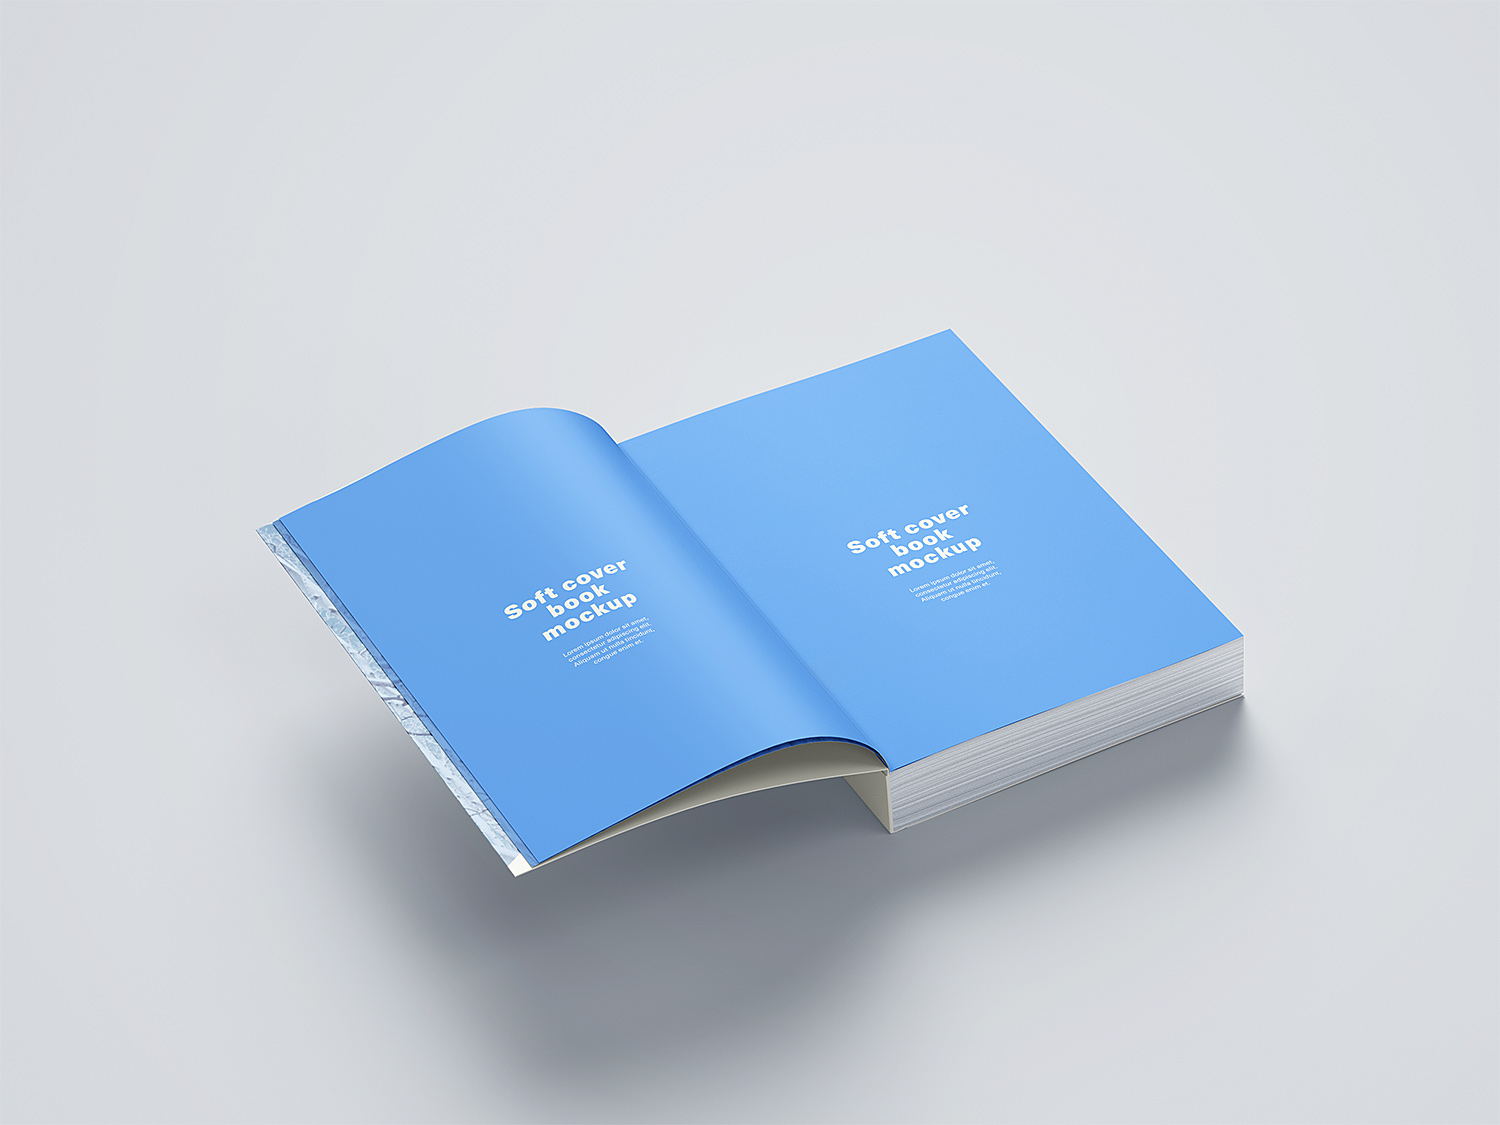 Soft_Cover_Book_Mockup_06